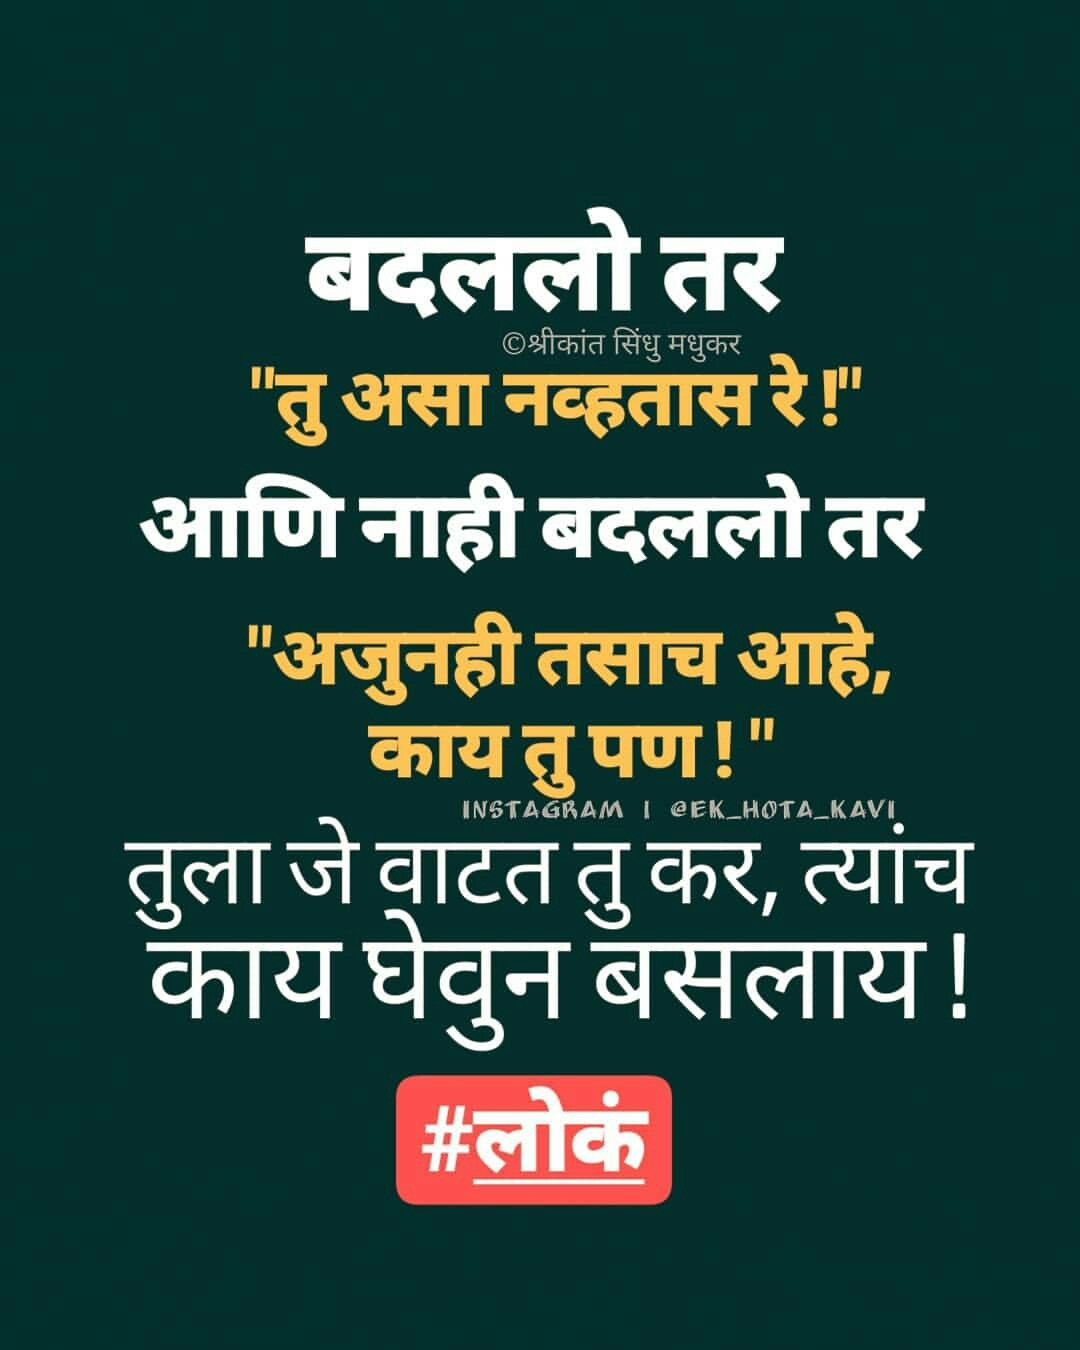 Pin By Tanaya On Marathi Funny Bio Quotes Mantra Quotes Motivatinal Quotes